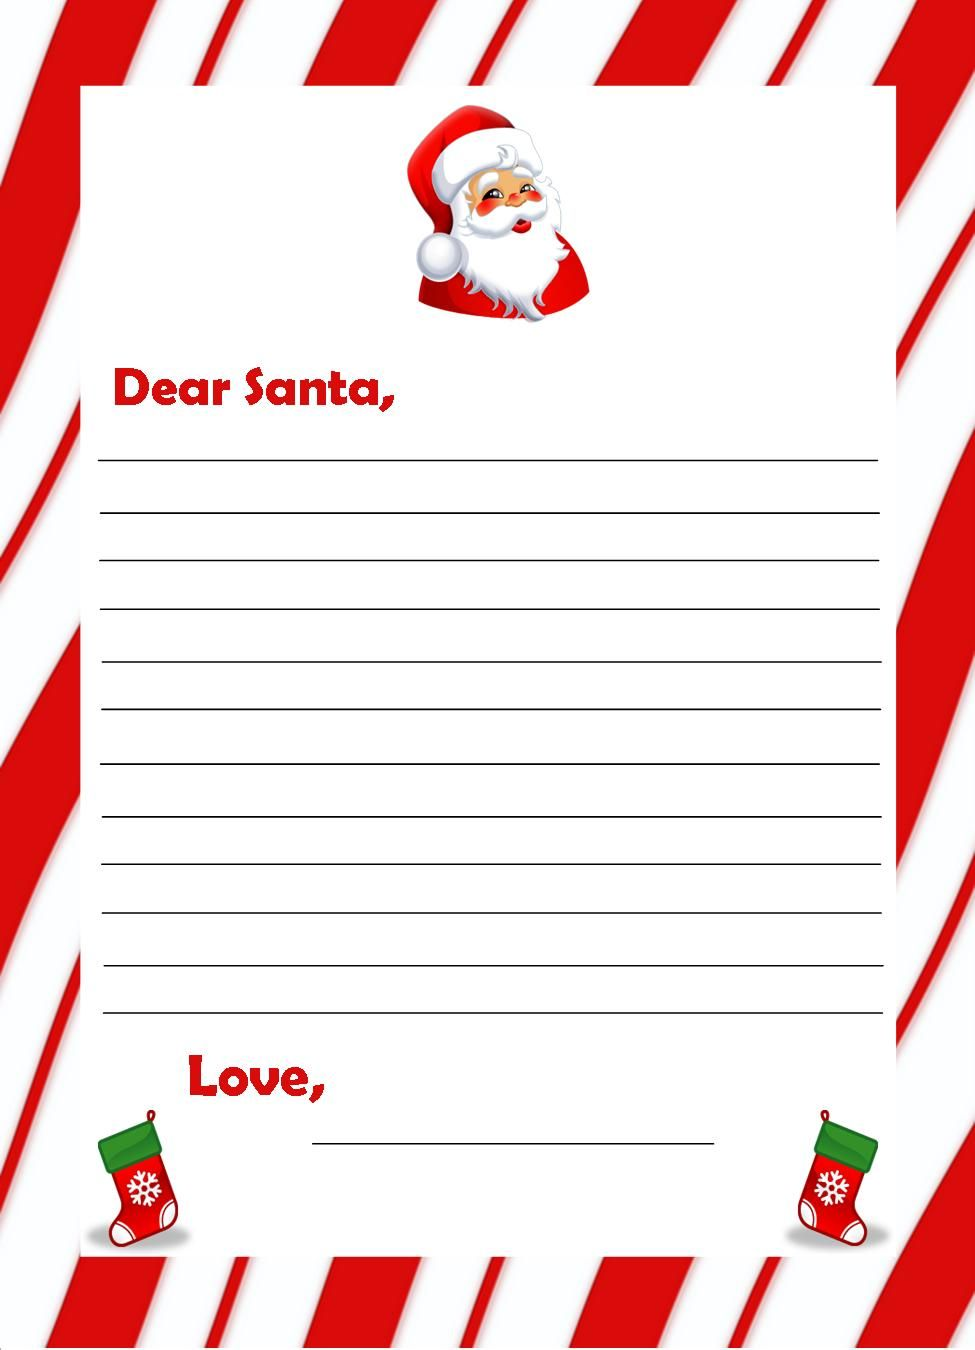 Santa letter template10g 9751350 free santa letters santa letter template10g 9751350 free santa lettersletter to santa templatechristmas spiritdancerdesigns Gallery